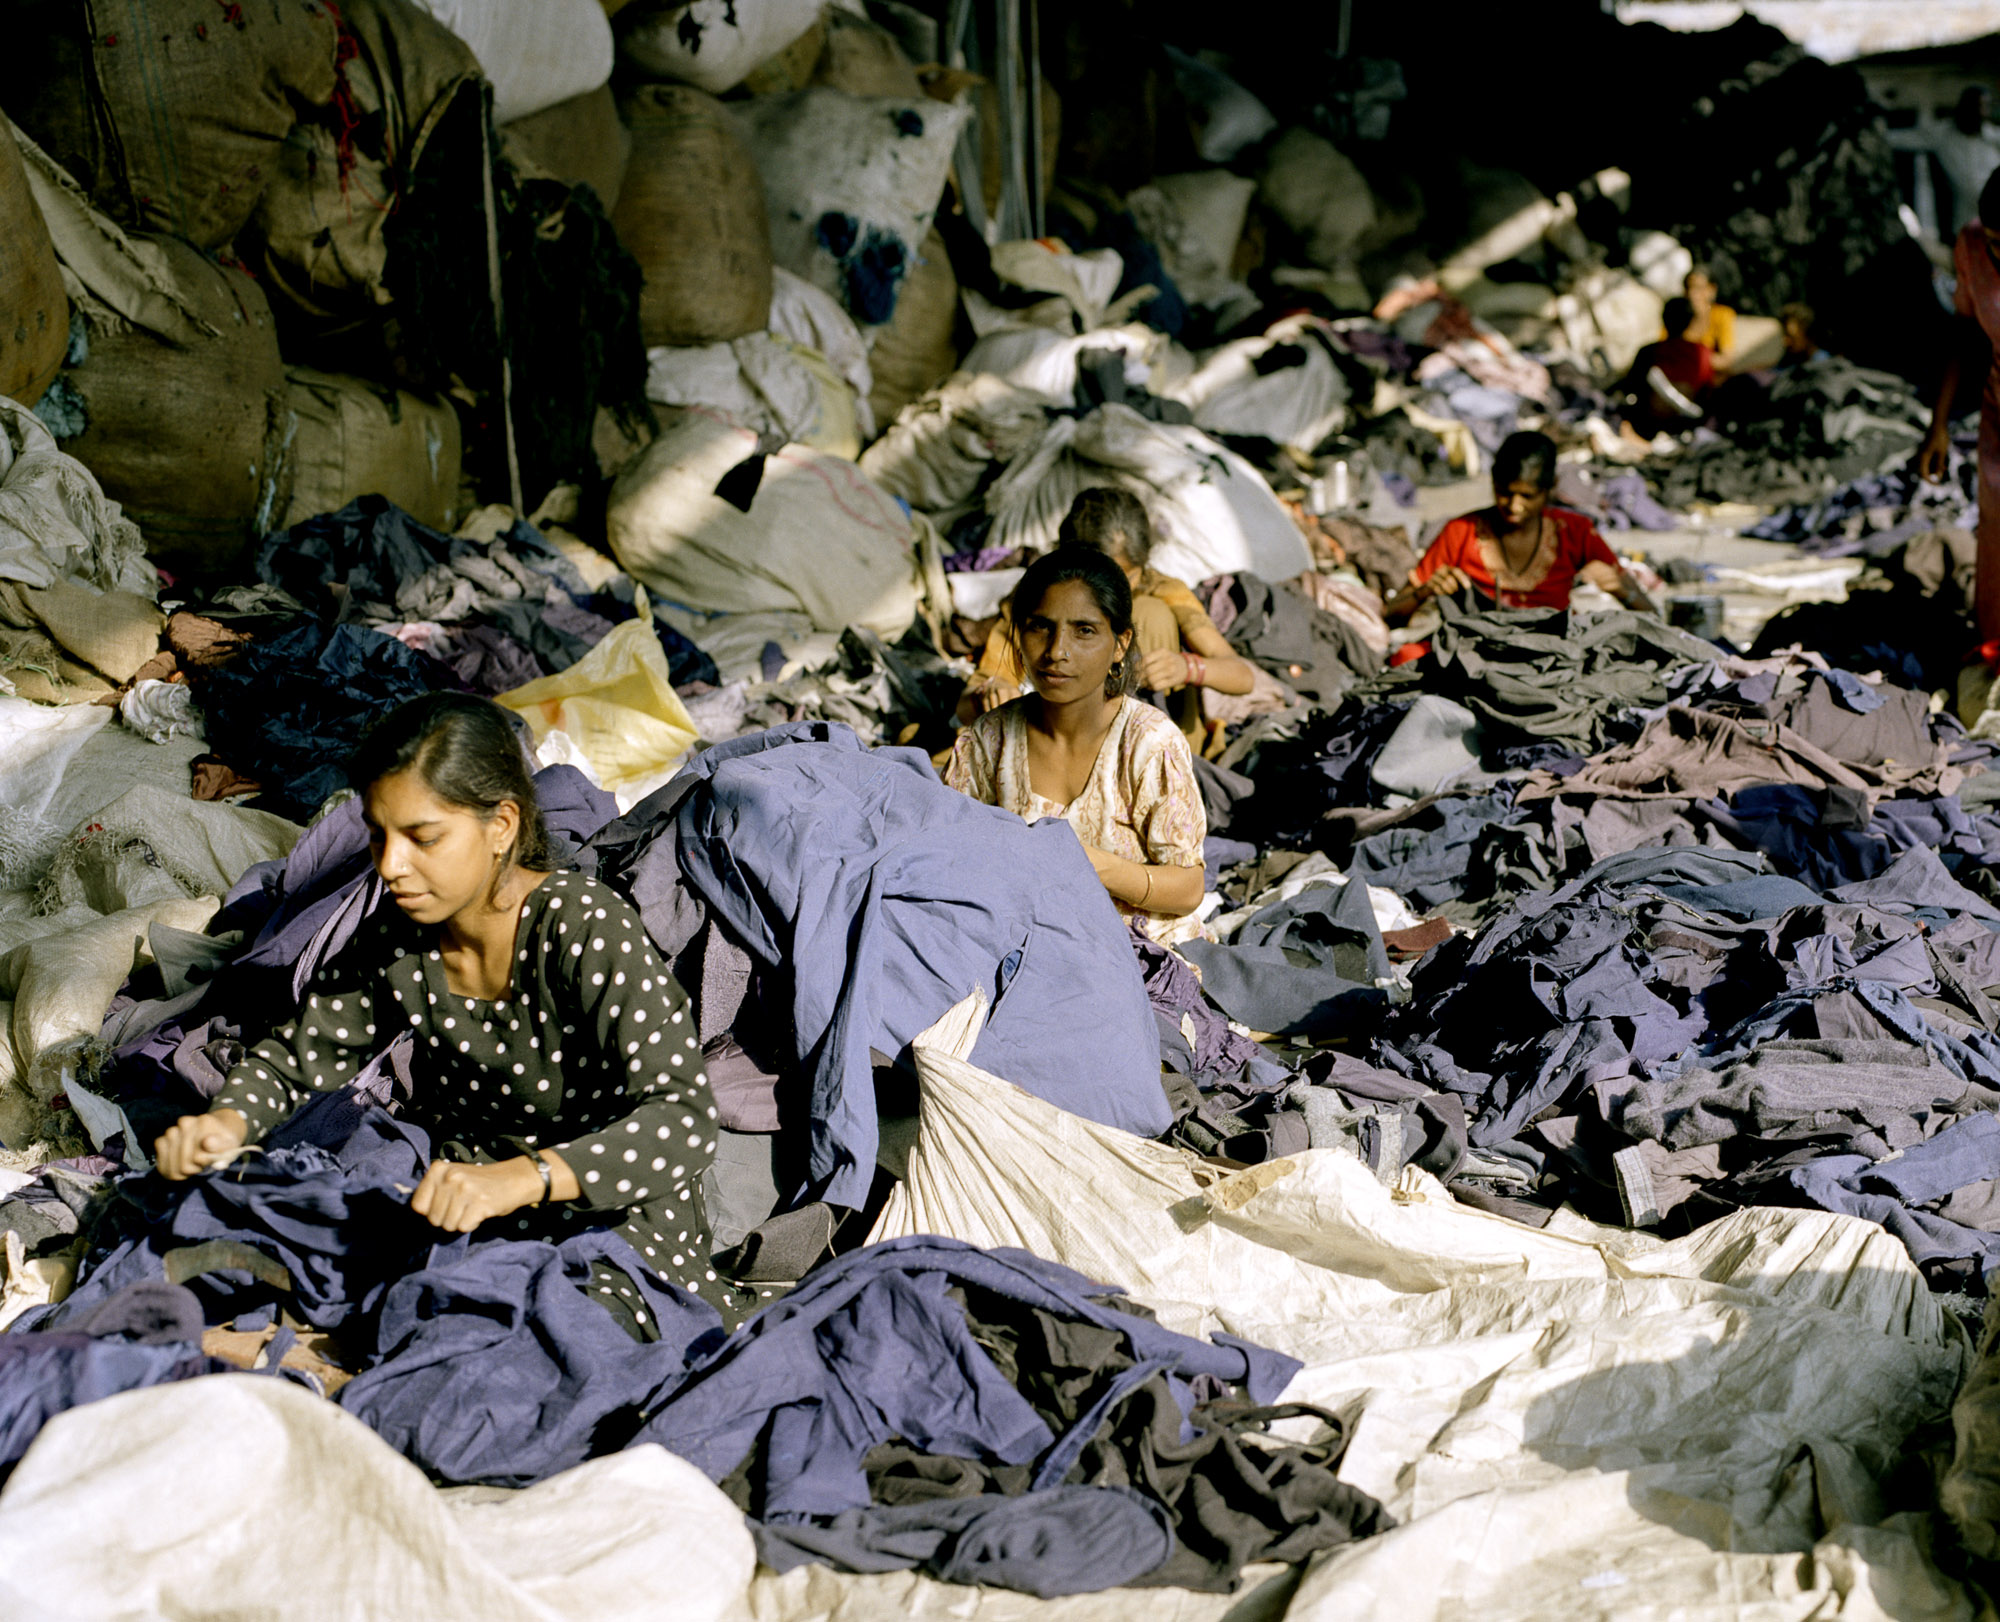 Women cut up jumpers, jackets and coats using traditional vegetable cutters. Garment labels advertising expensive brand names and global origins are discarded as worthless information.